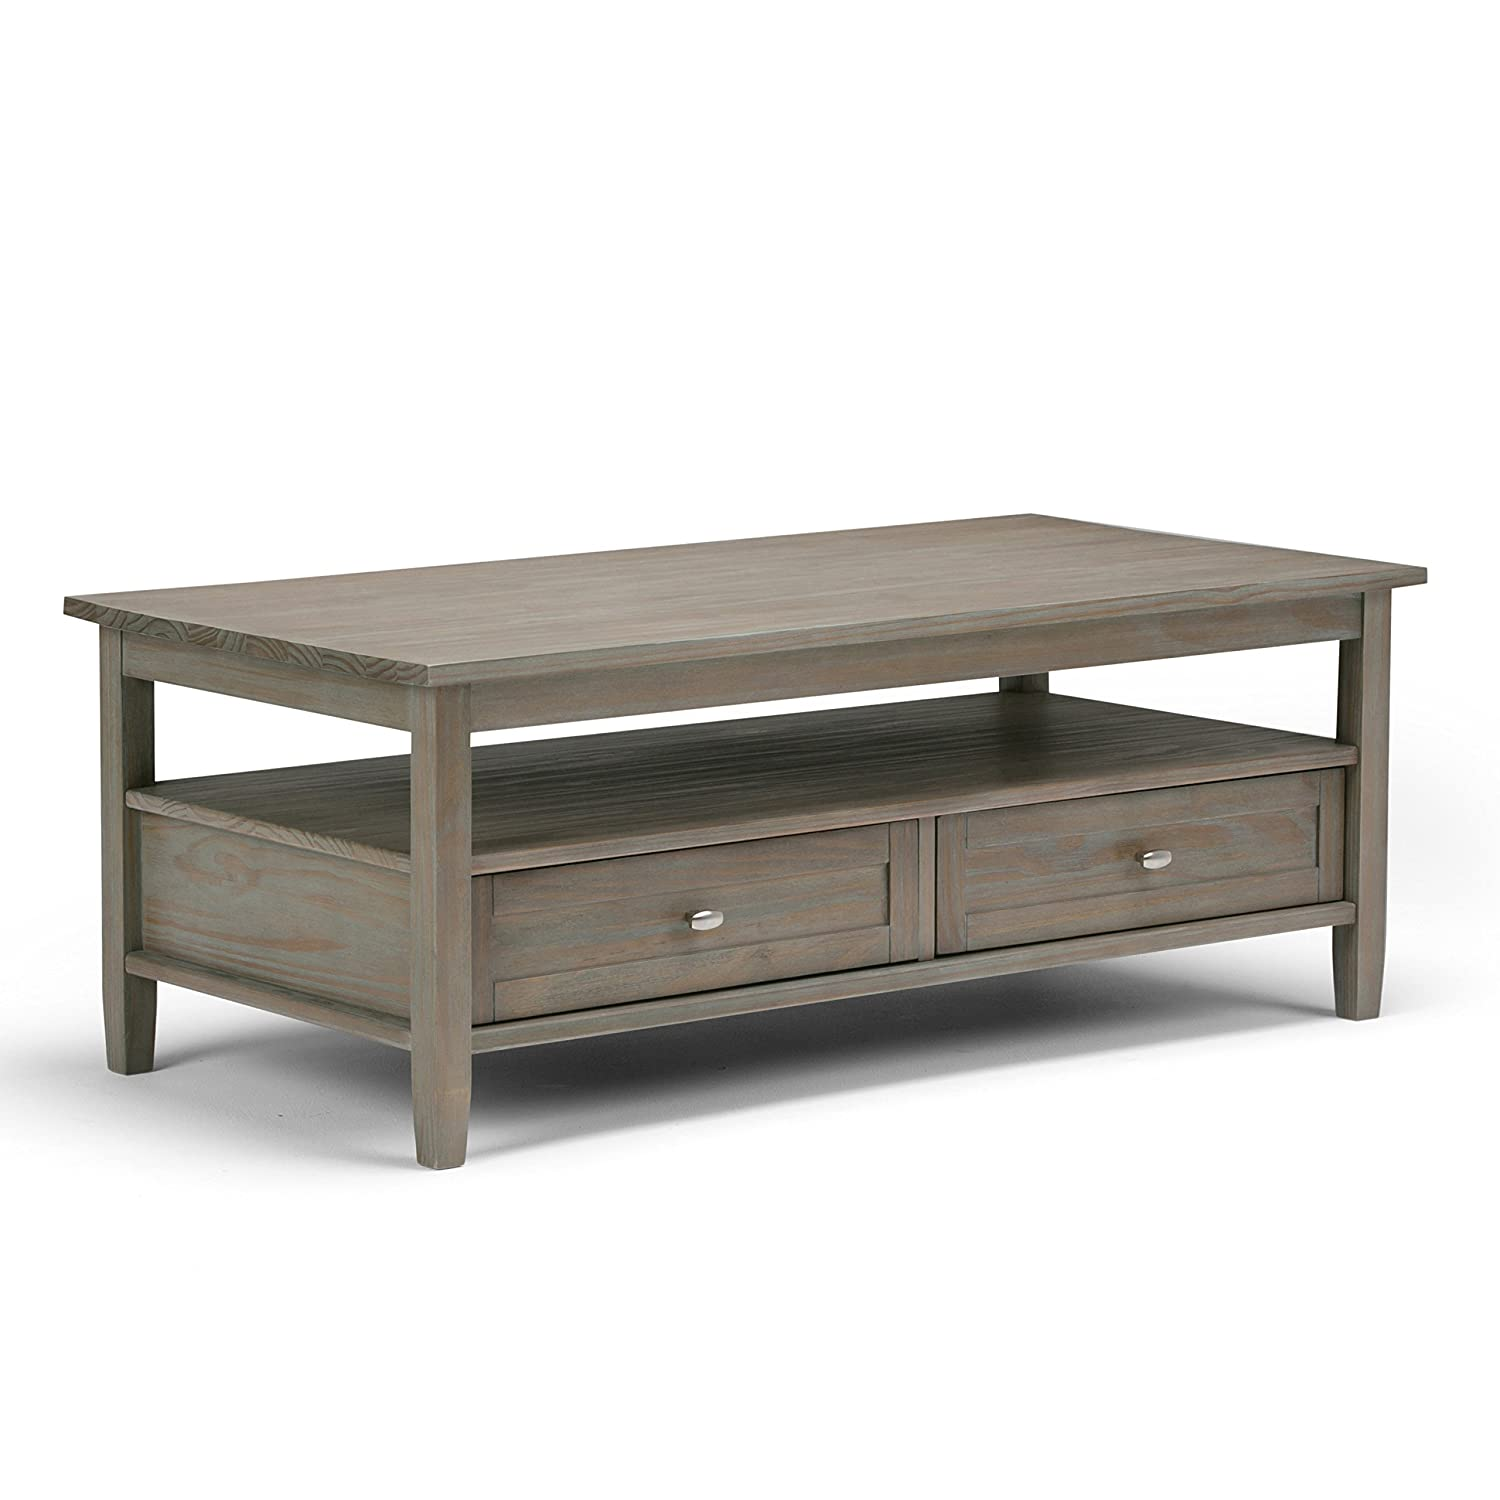 Distressed Gray Coffee Table.Simpli Home Axwsh001 Gr Warm Shaker Solid Wood 48 Inch Wide Rustic Coffee Table In Distressed Grey